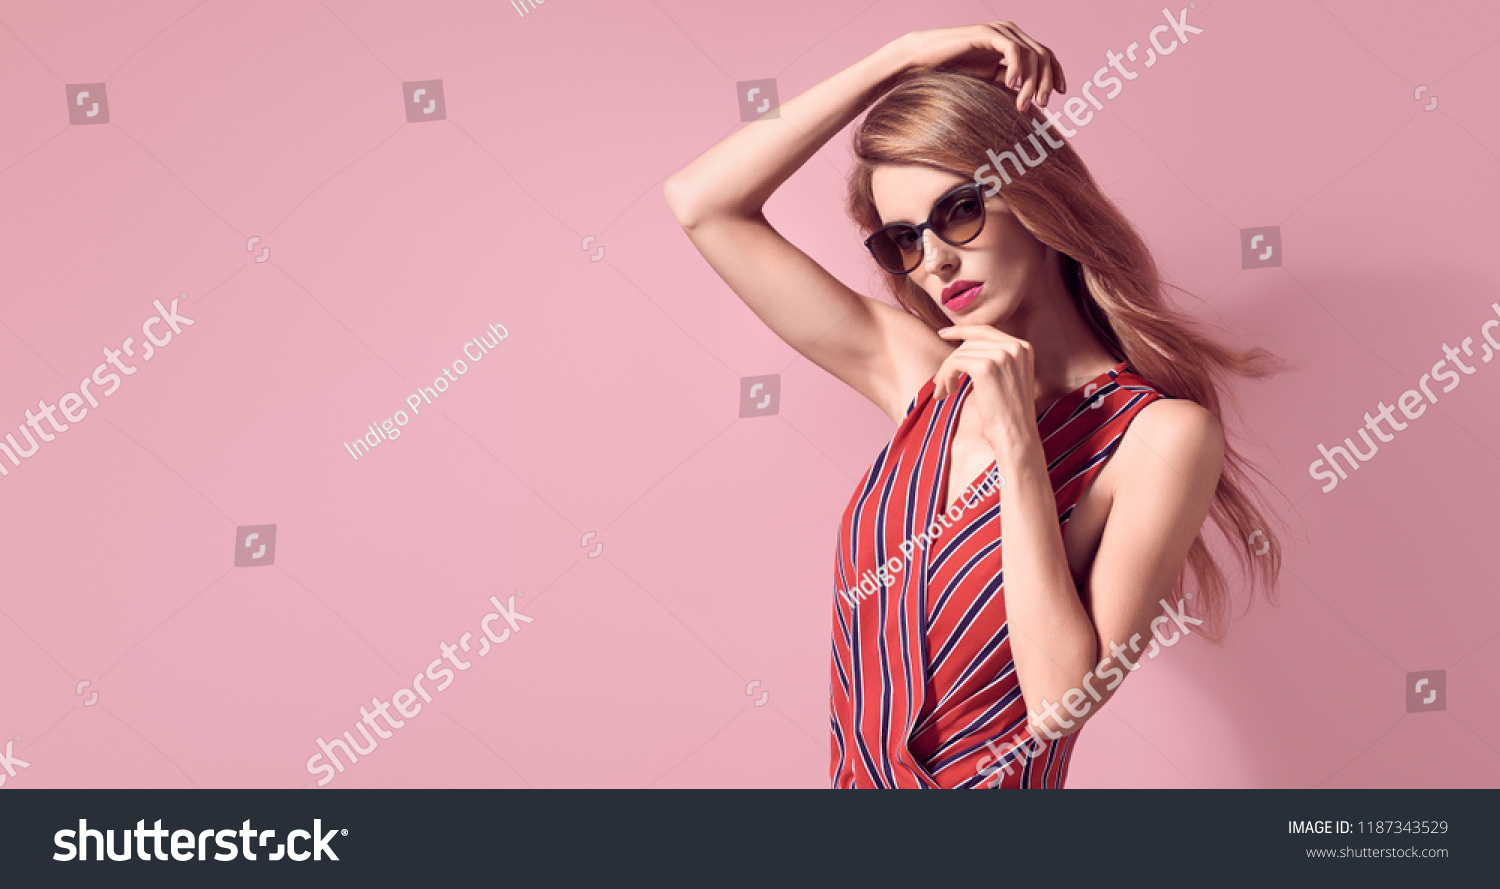 3f070a45e4a Sexy adorable Blonde Lady in Trendy striped blouse. Stylish Art Sensual studio  Portrait. Young